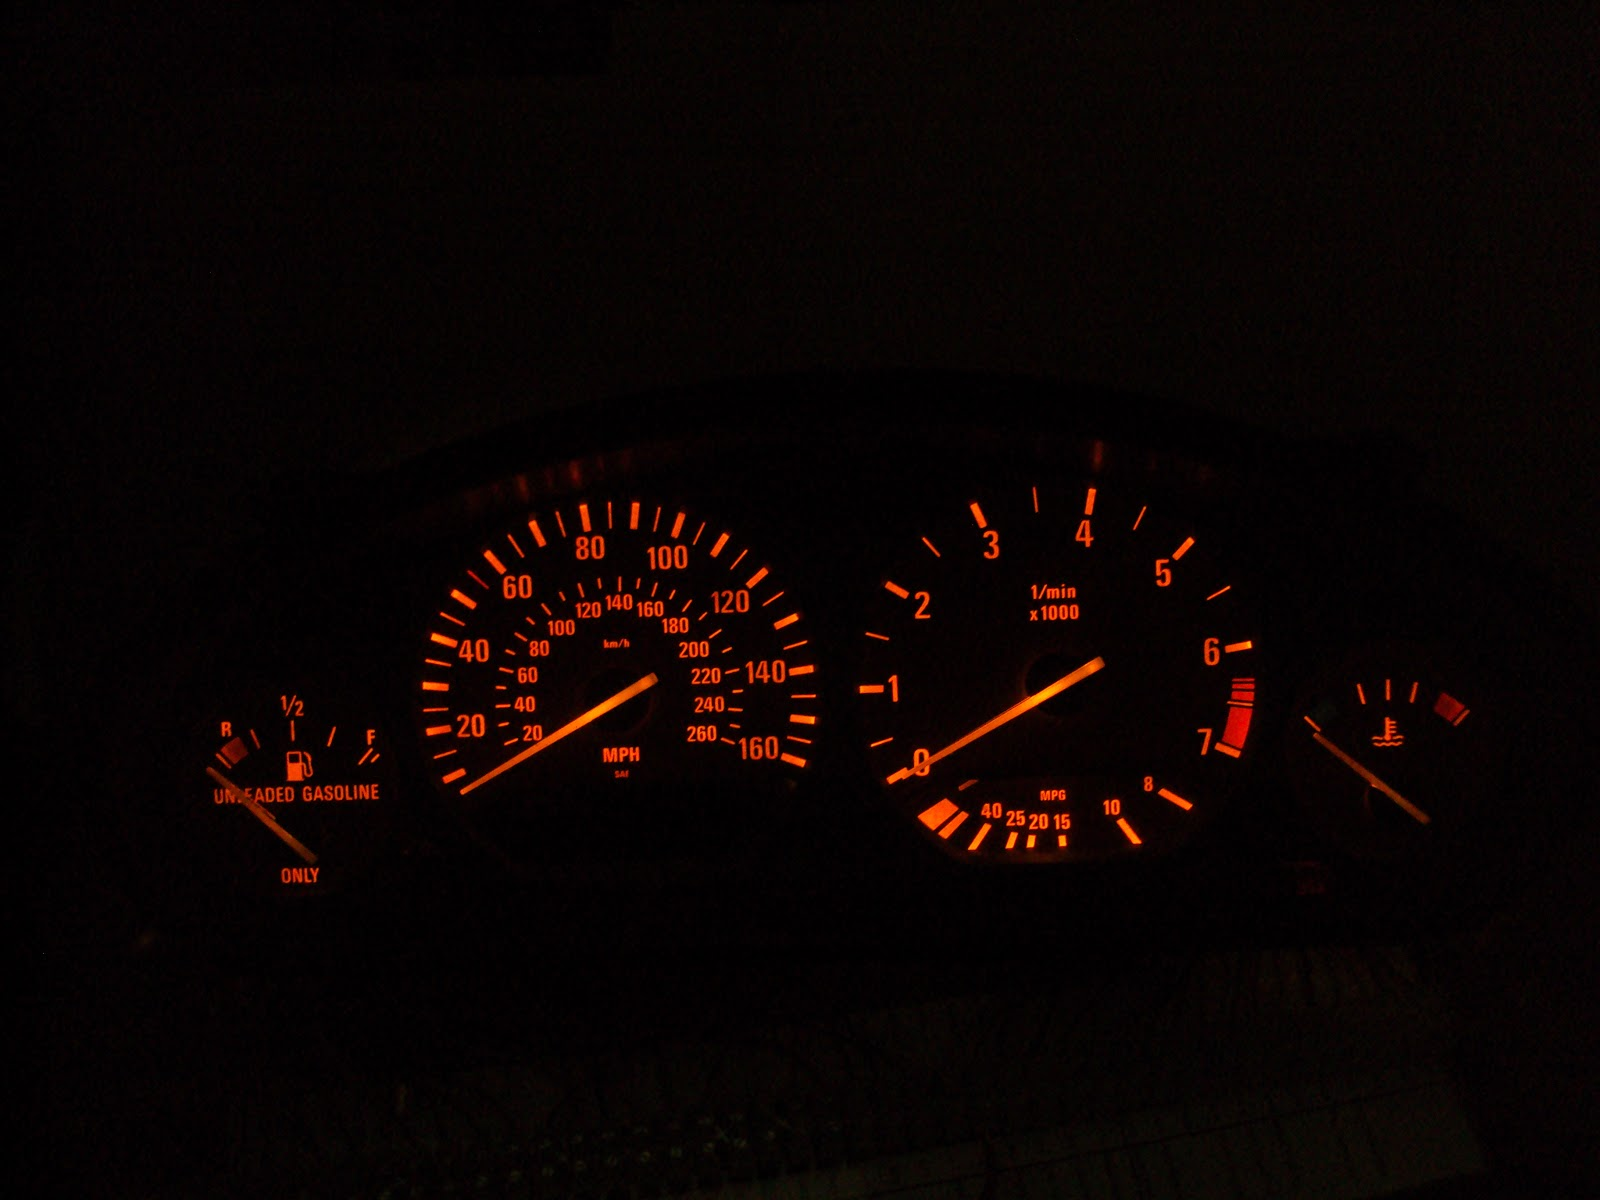 showing the back lighted instrument cluster after connecting 12 volts to  conn a pin 2 and ground to conn b pin 3